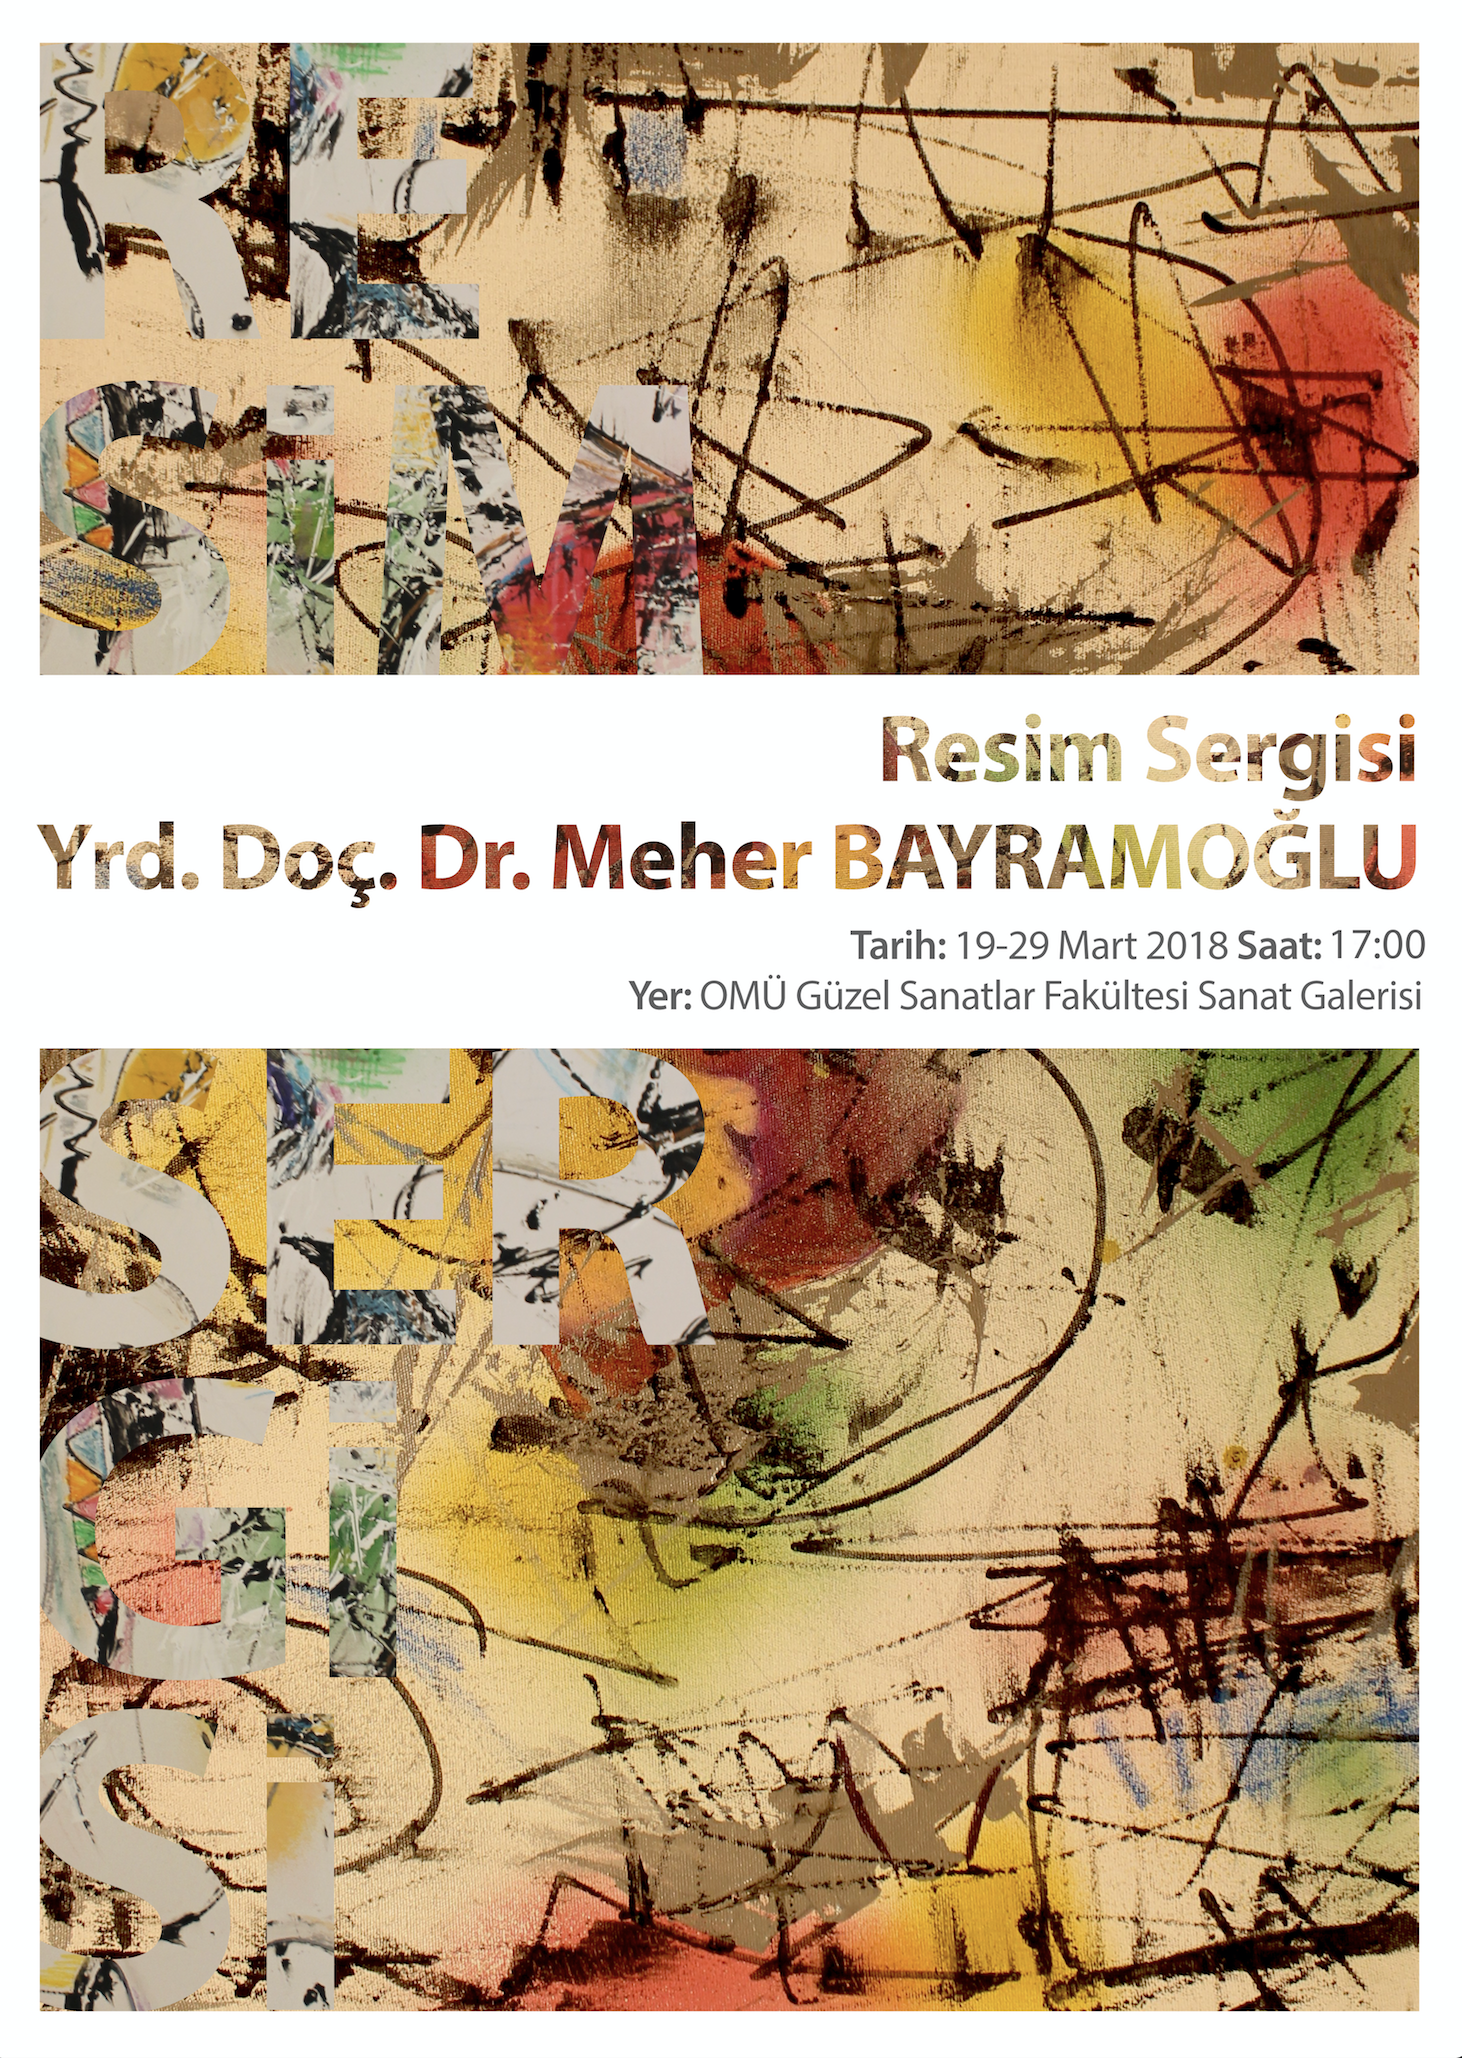 http://www.omu.edu.tr/sites/default/files/meher_bayramoglu-2018-sergi.png